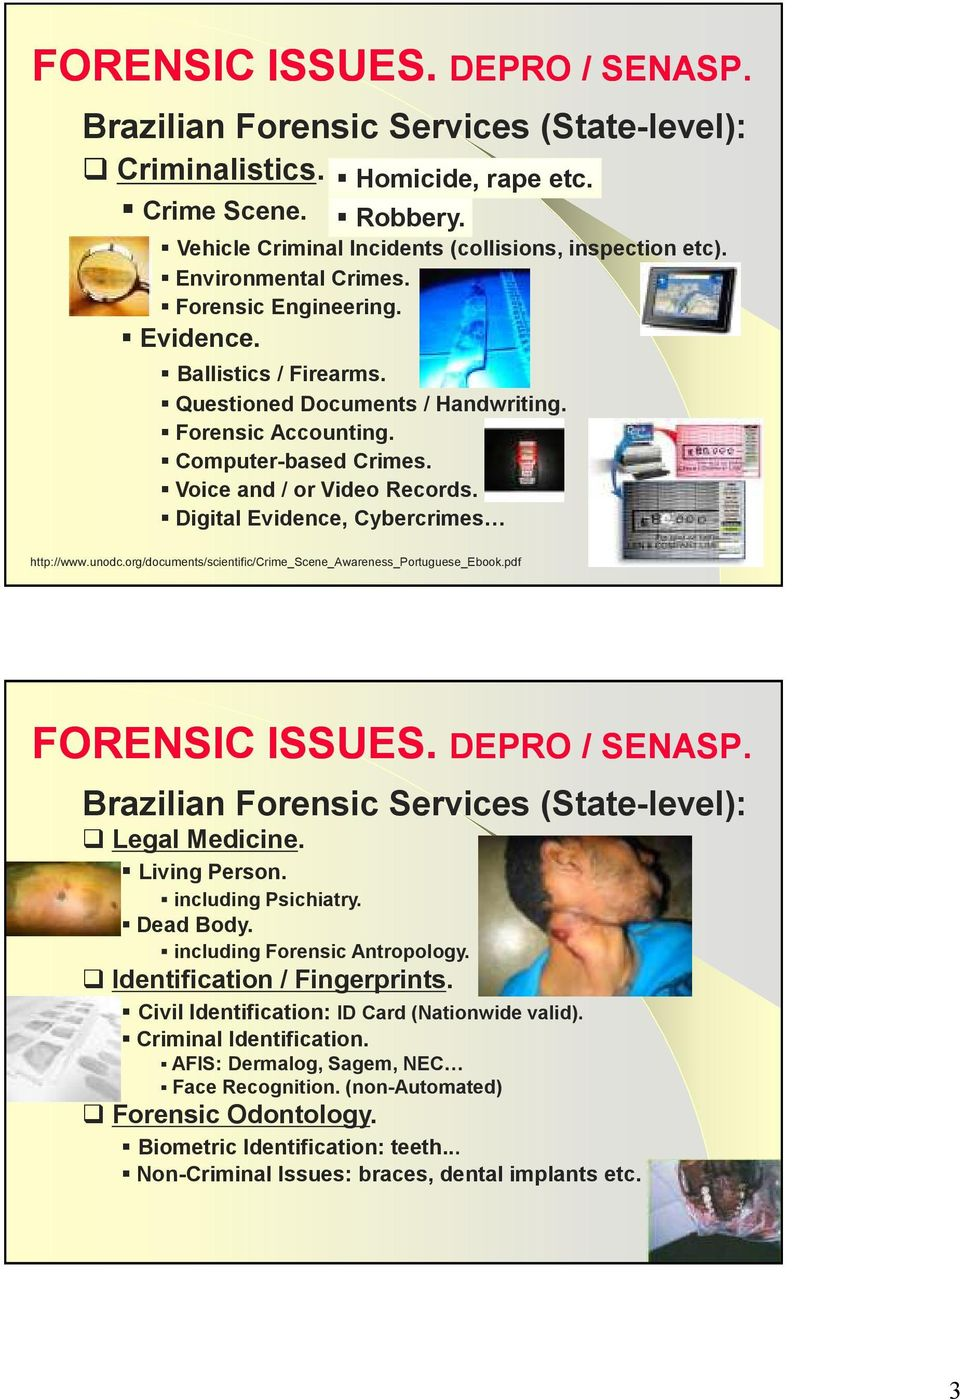 Digital Evidence, Cybercrimes http://www.unodc.org/documents/scientific/crime_scene_awareness_portuguese_ebook.pdf Brazilian Forensic Services (State-level): Legal Medicine. Living Person.